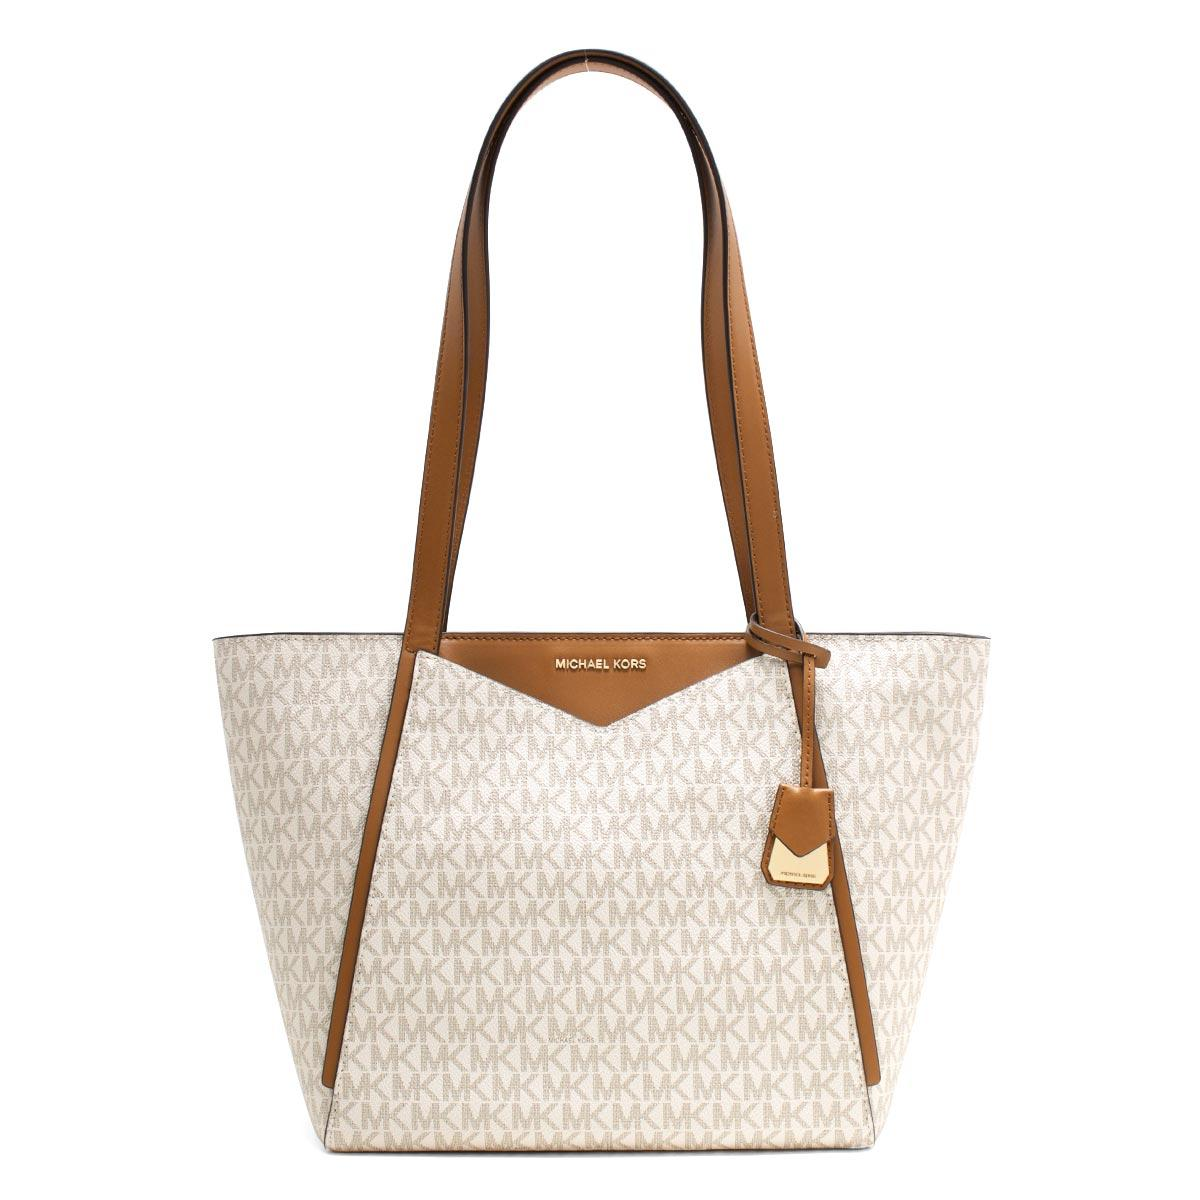 Buy Women Michael Kors Bags Totes Lazada Mercer Satchel Authentic New Arrival Whitney Small Togo Tote